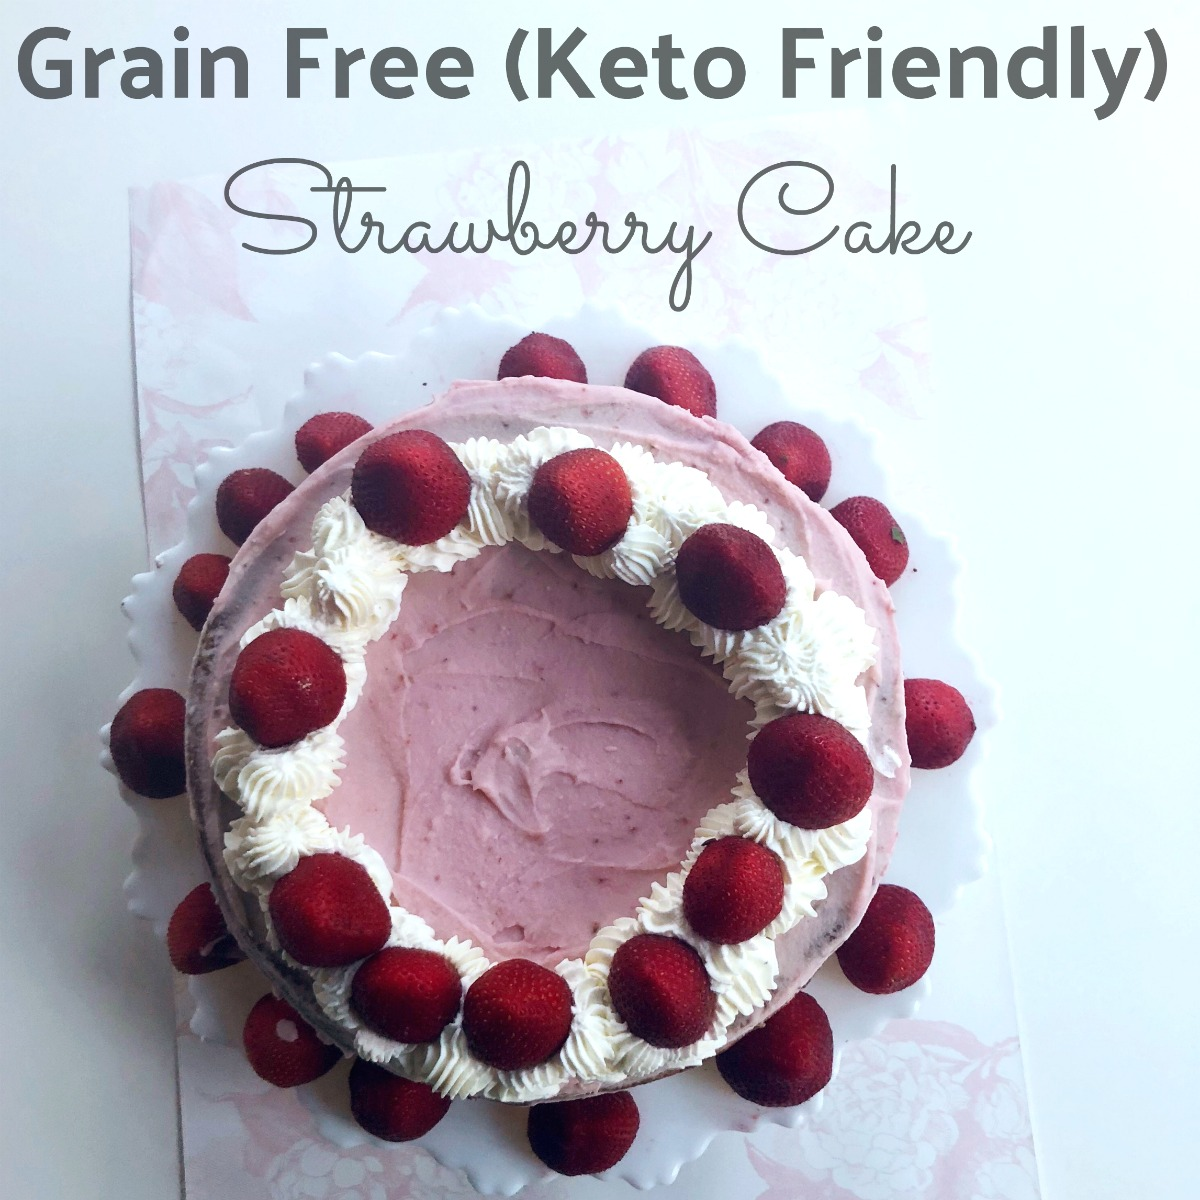 Gluten Free Strawberry Cake Low Carb Grain